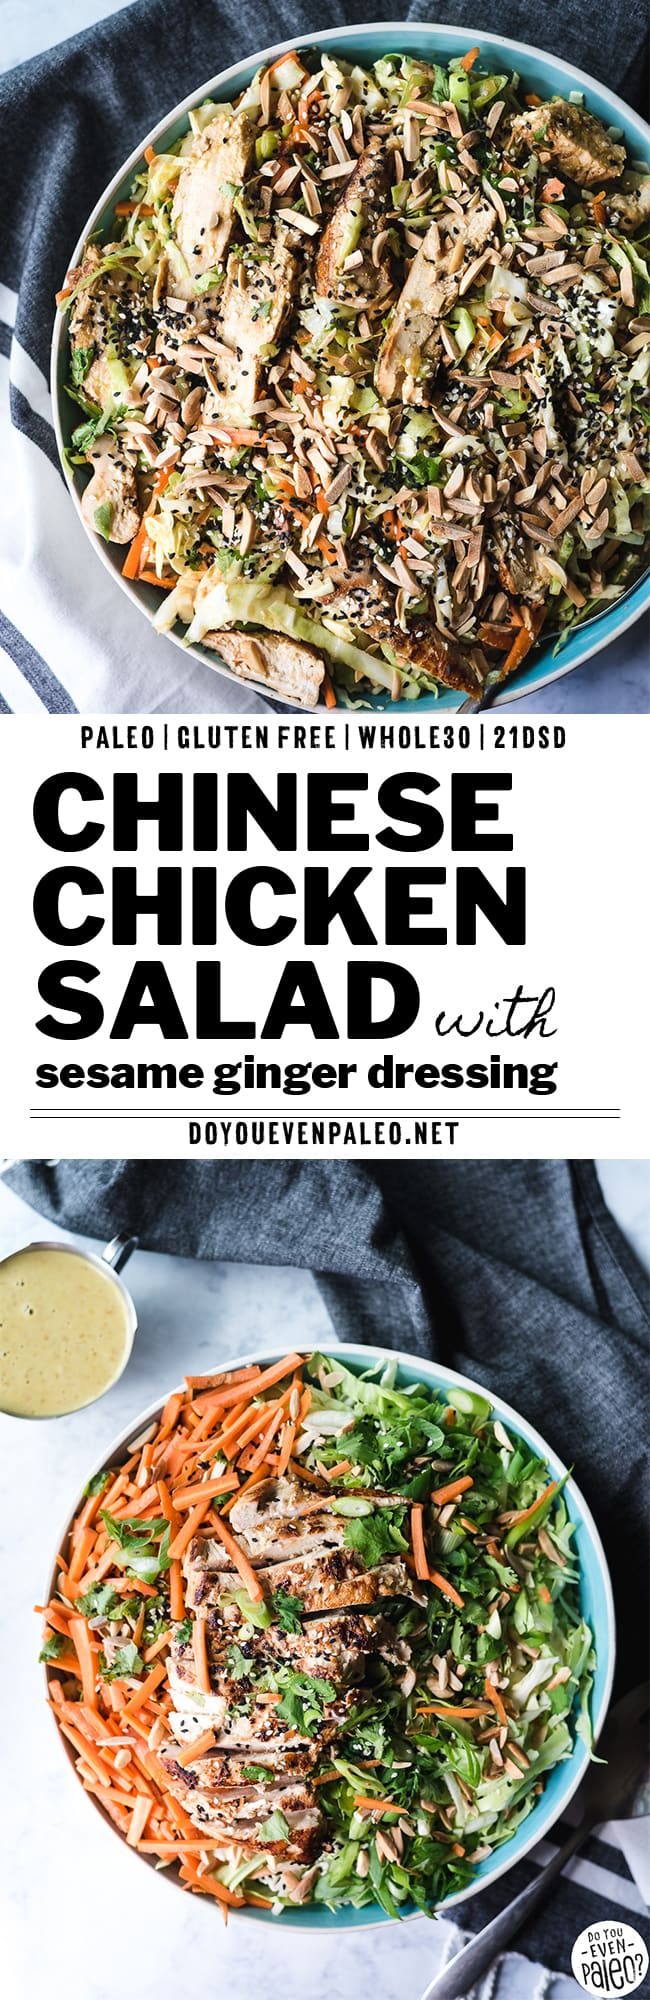 Chinese Chicken Salad Recipe with Sesame Ginger Dressing | DoYouEvenPaleo.net